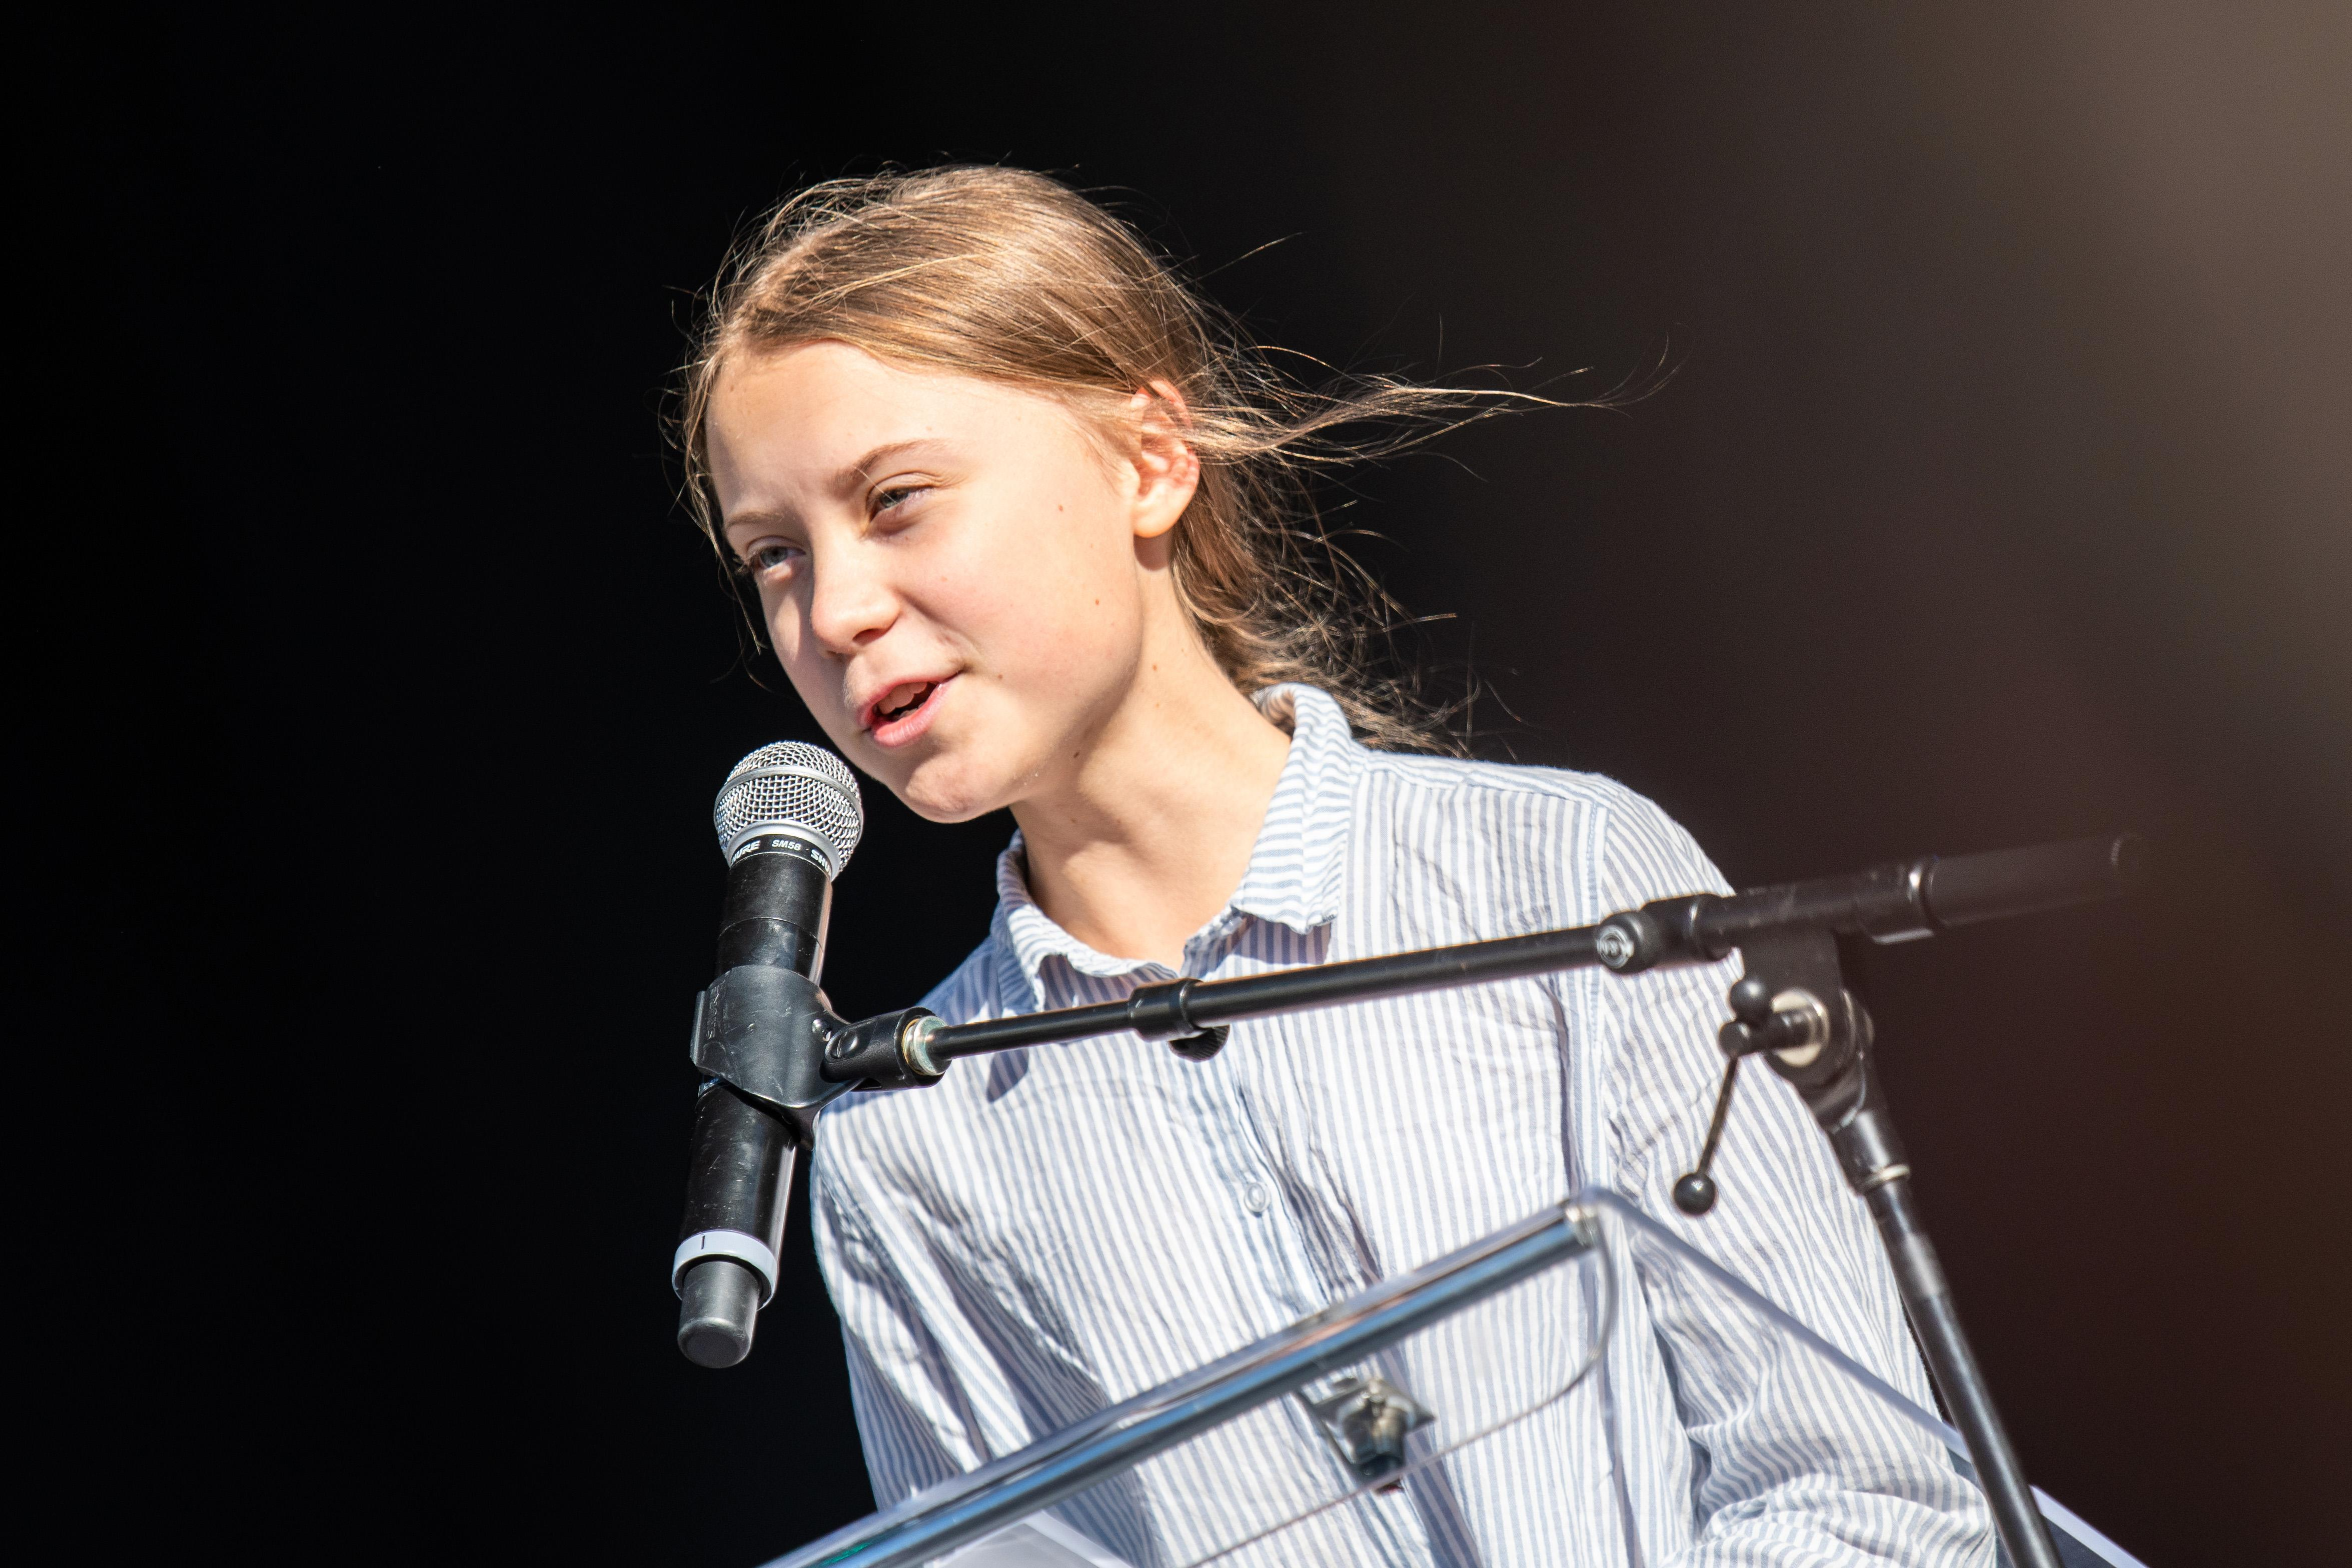 Fatboy Slim pays homage to Greta Thunberg with 'Right Here, Right Now' remix